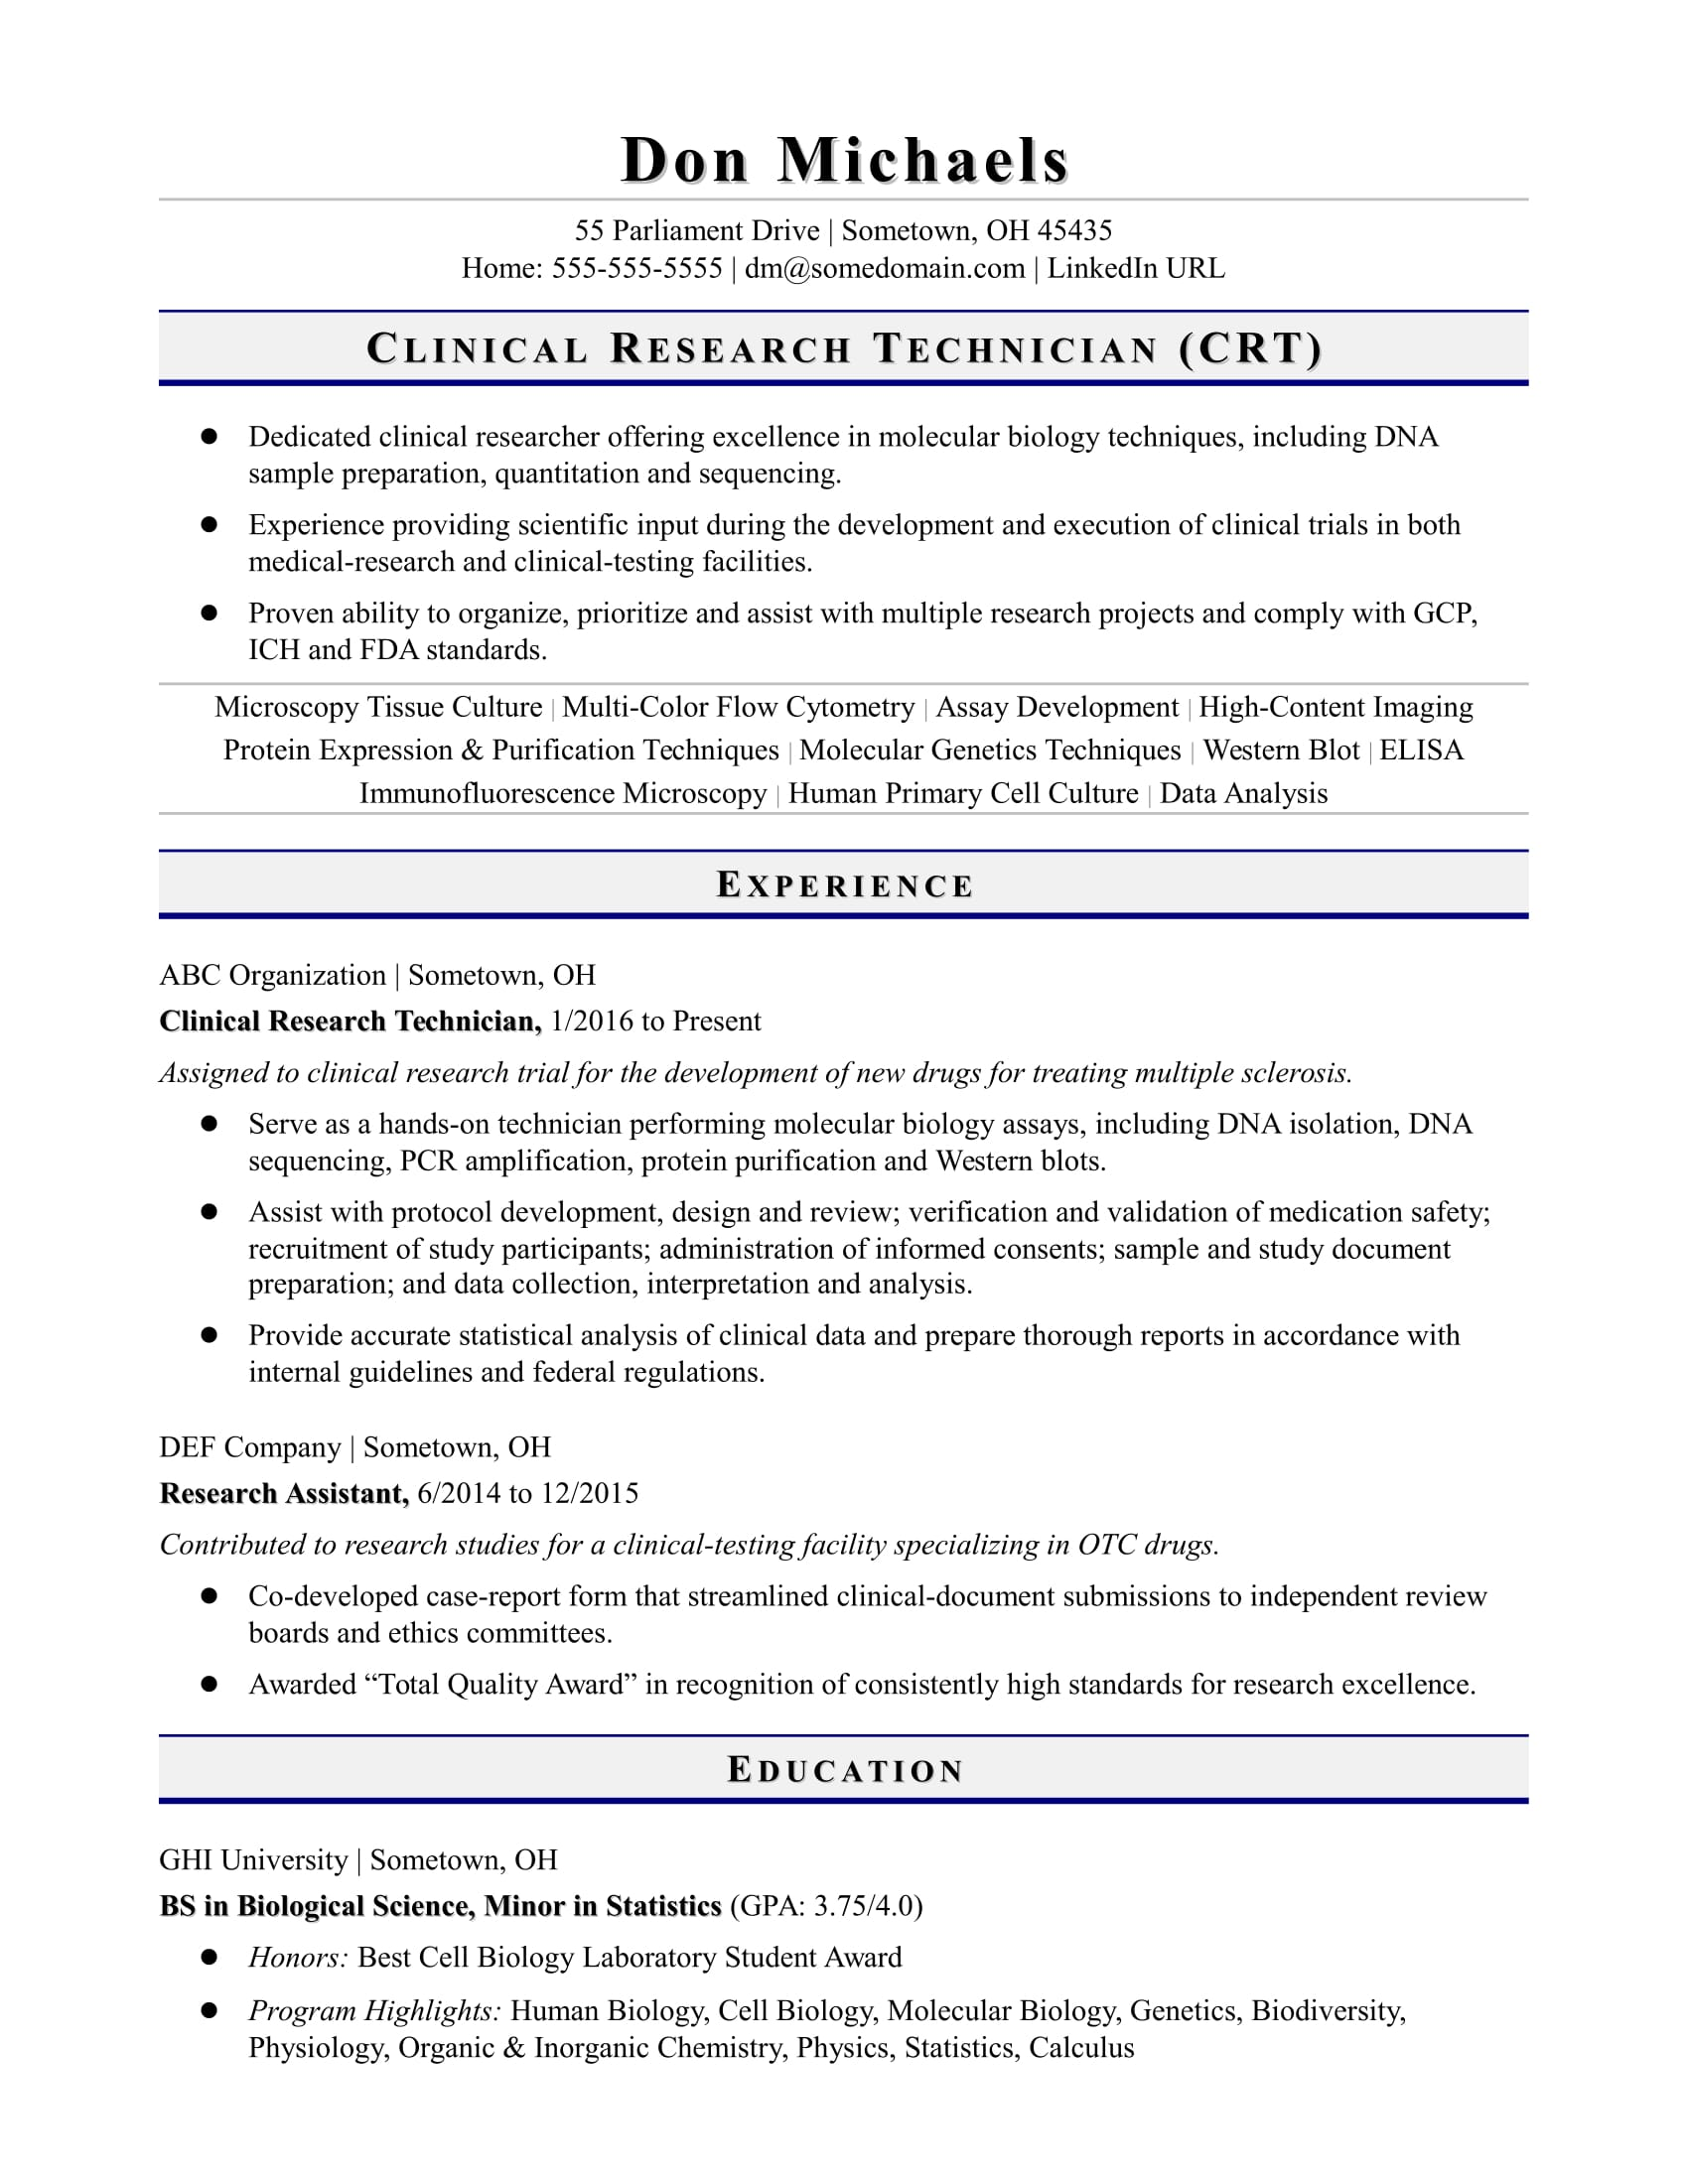 Sample resume for an entry-level research technician